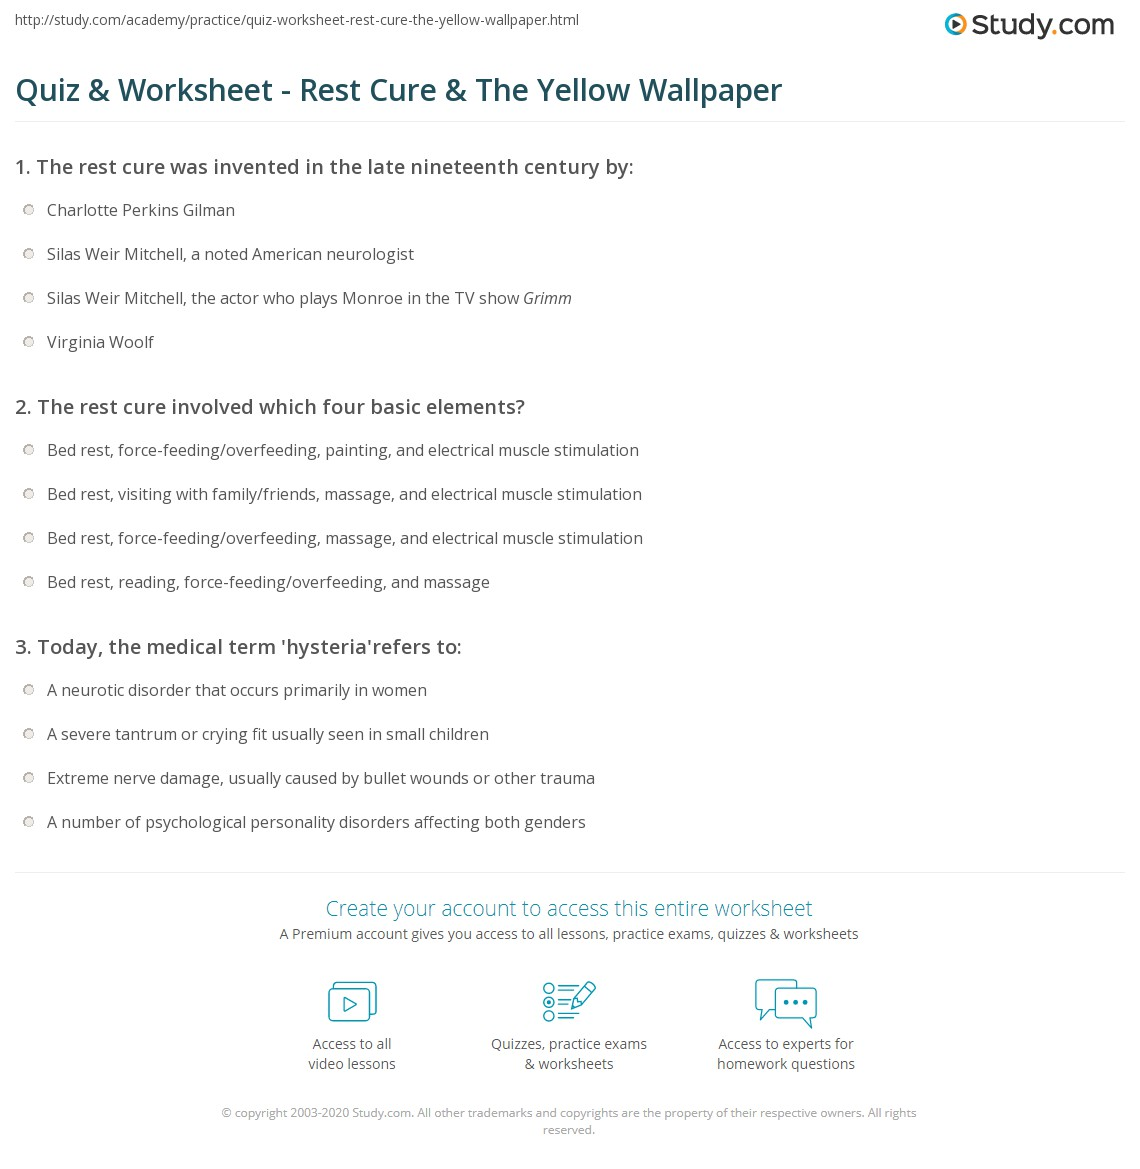 Quiz & Worksheet - Rest Cure & The